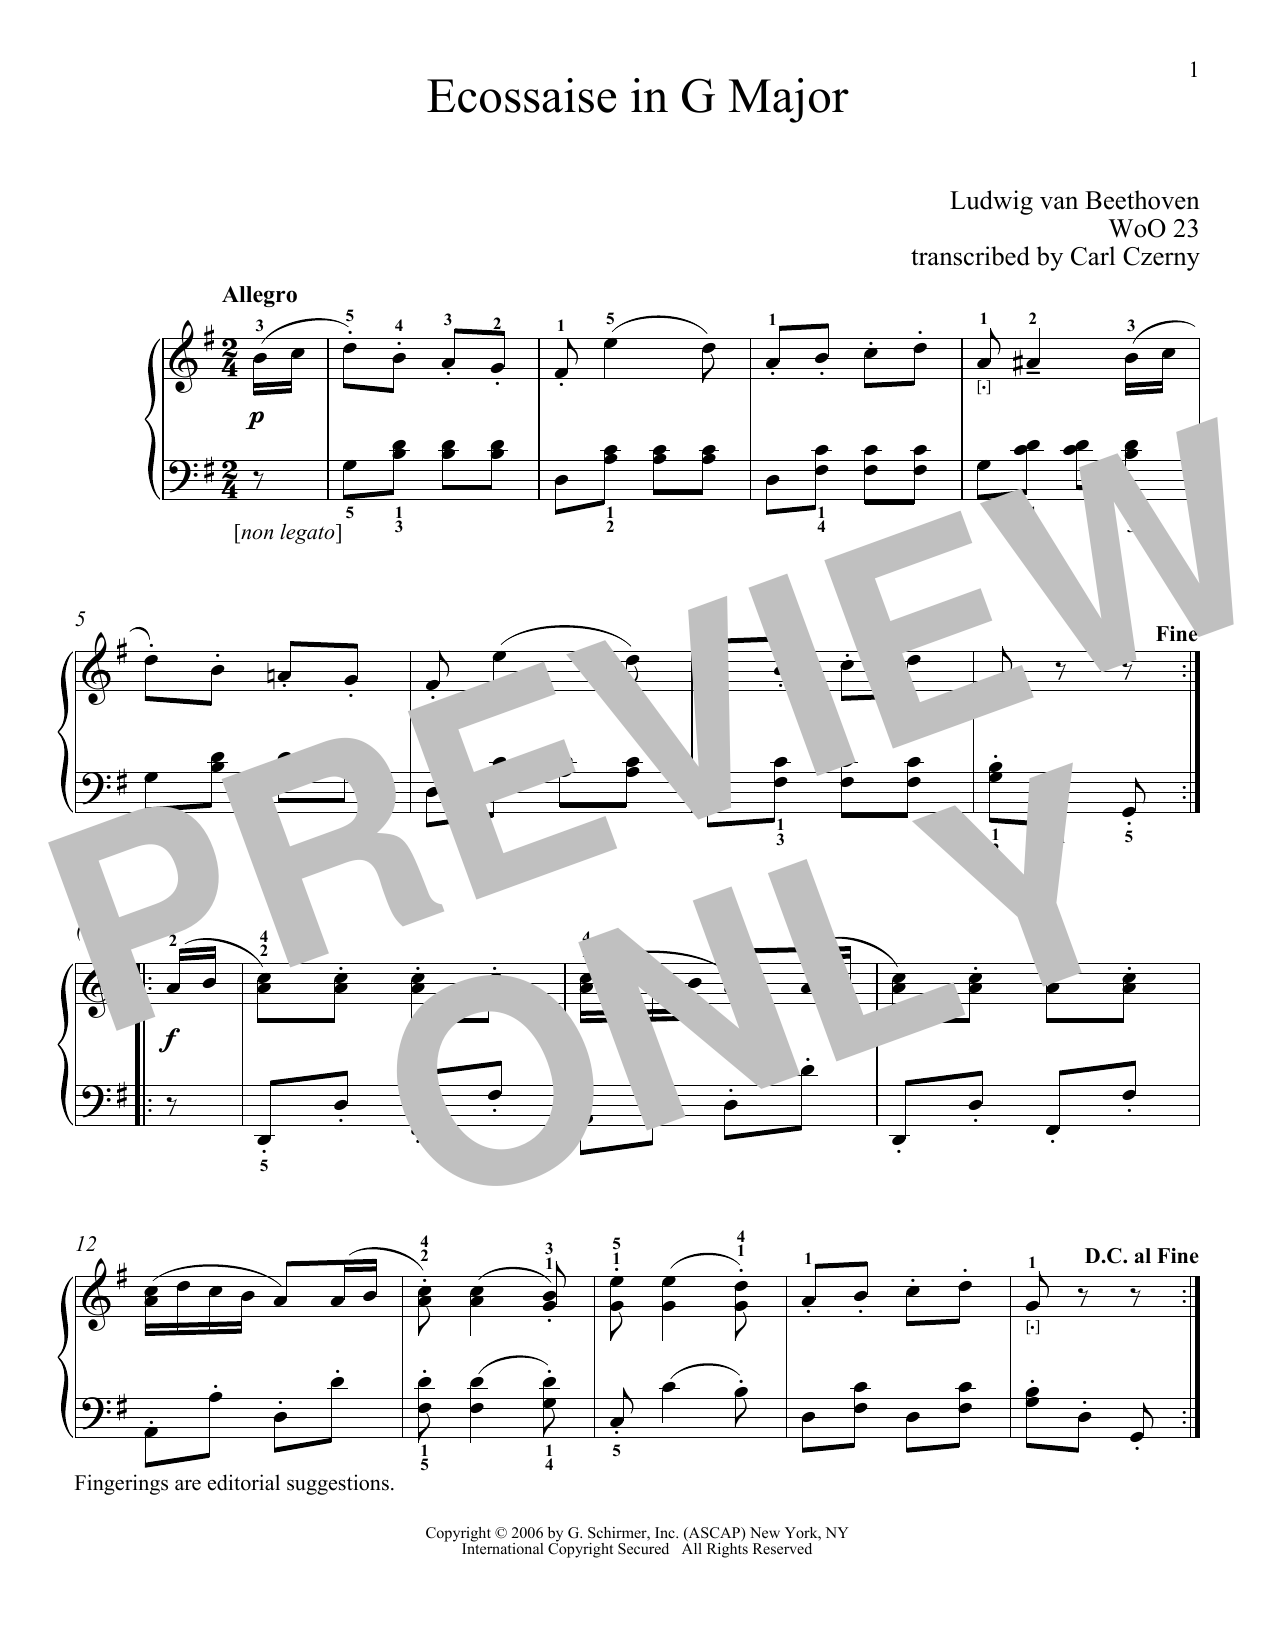 Ludwig van Beethoven Ecossaise In G Major, WoO 23 sheet music notes and chords. Download Printable PDF.